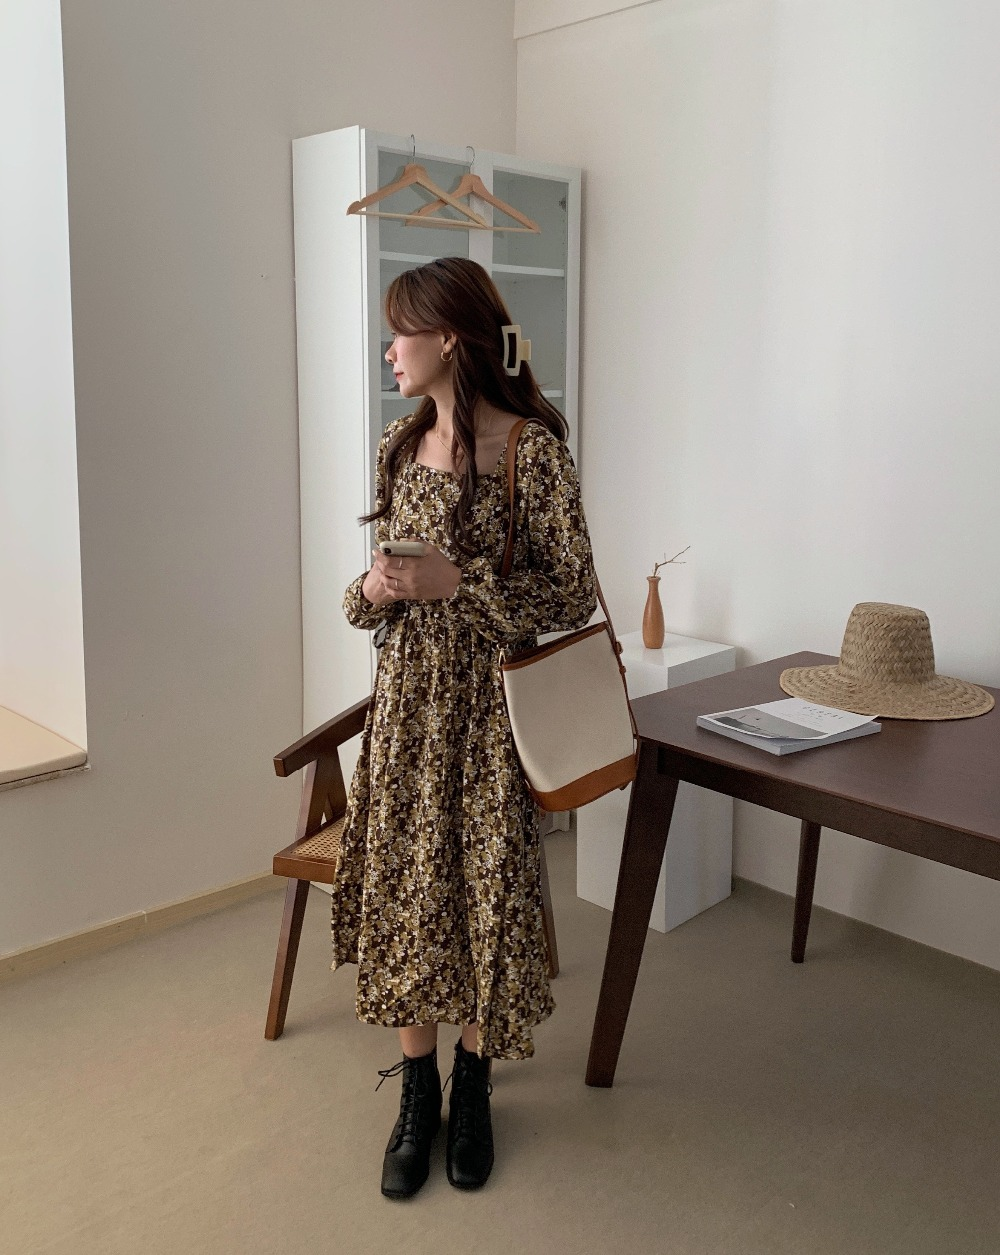 H206b35debcaf4c7ba055ee380c37c0fdU - Autumn Square Collar Lantern Sleeves Floral Print Midi Dress